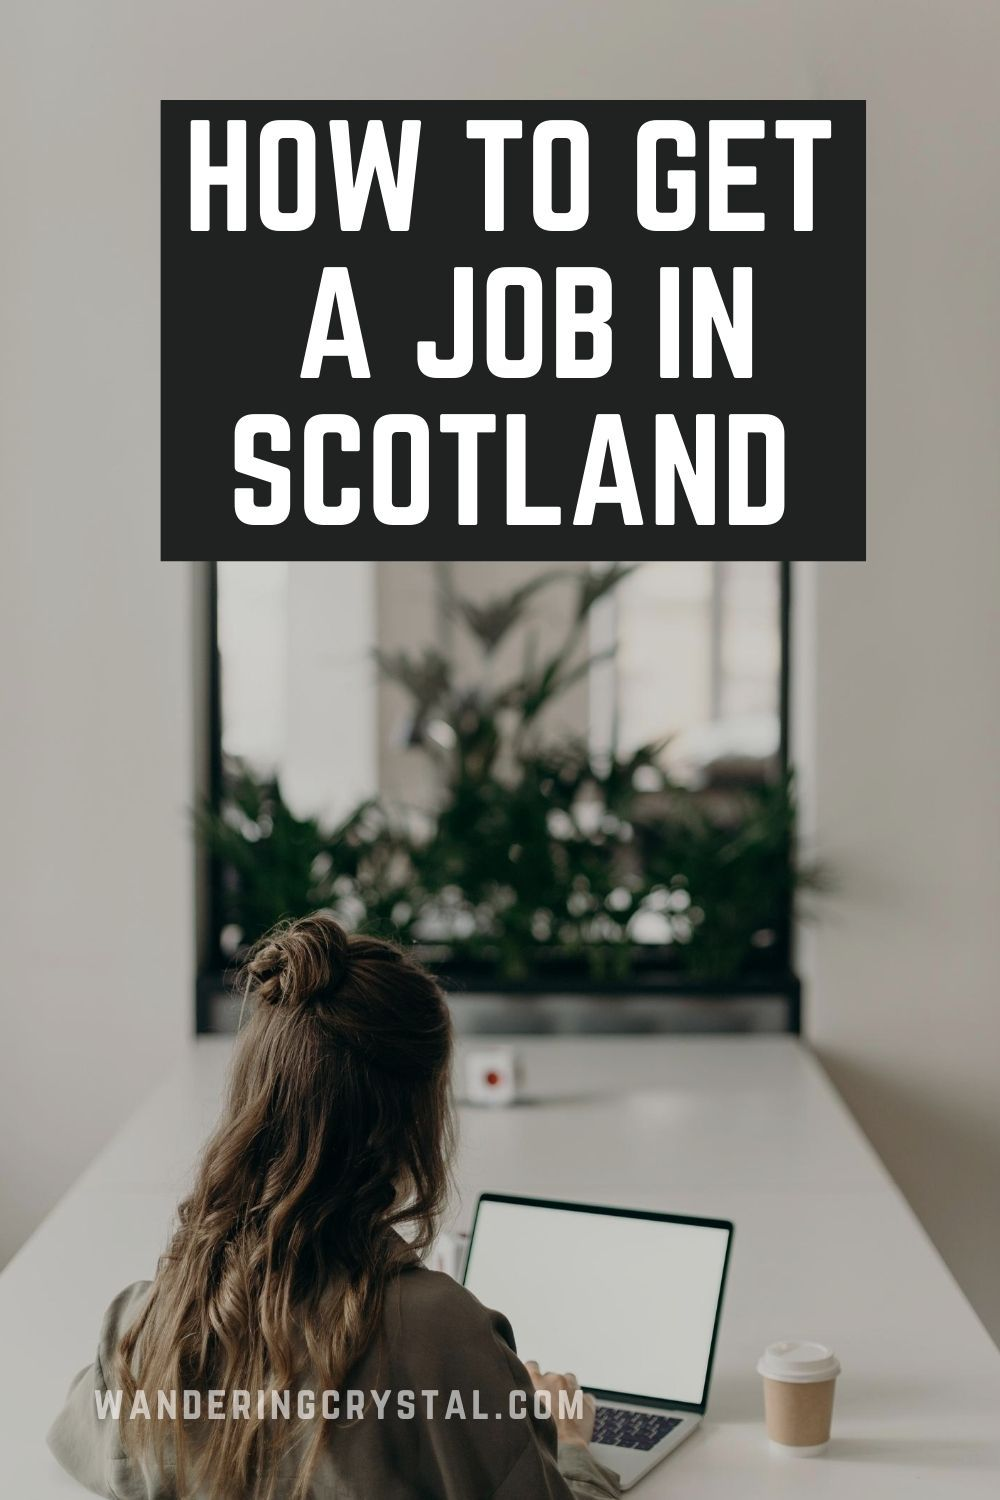 Jobs in Scotland for Foreigners Wandering Crystal in